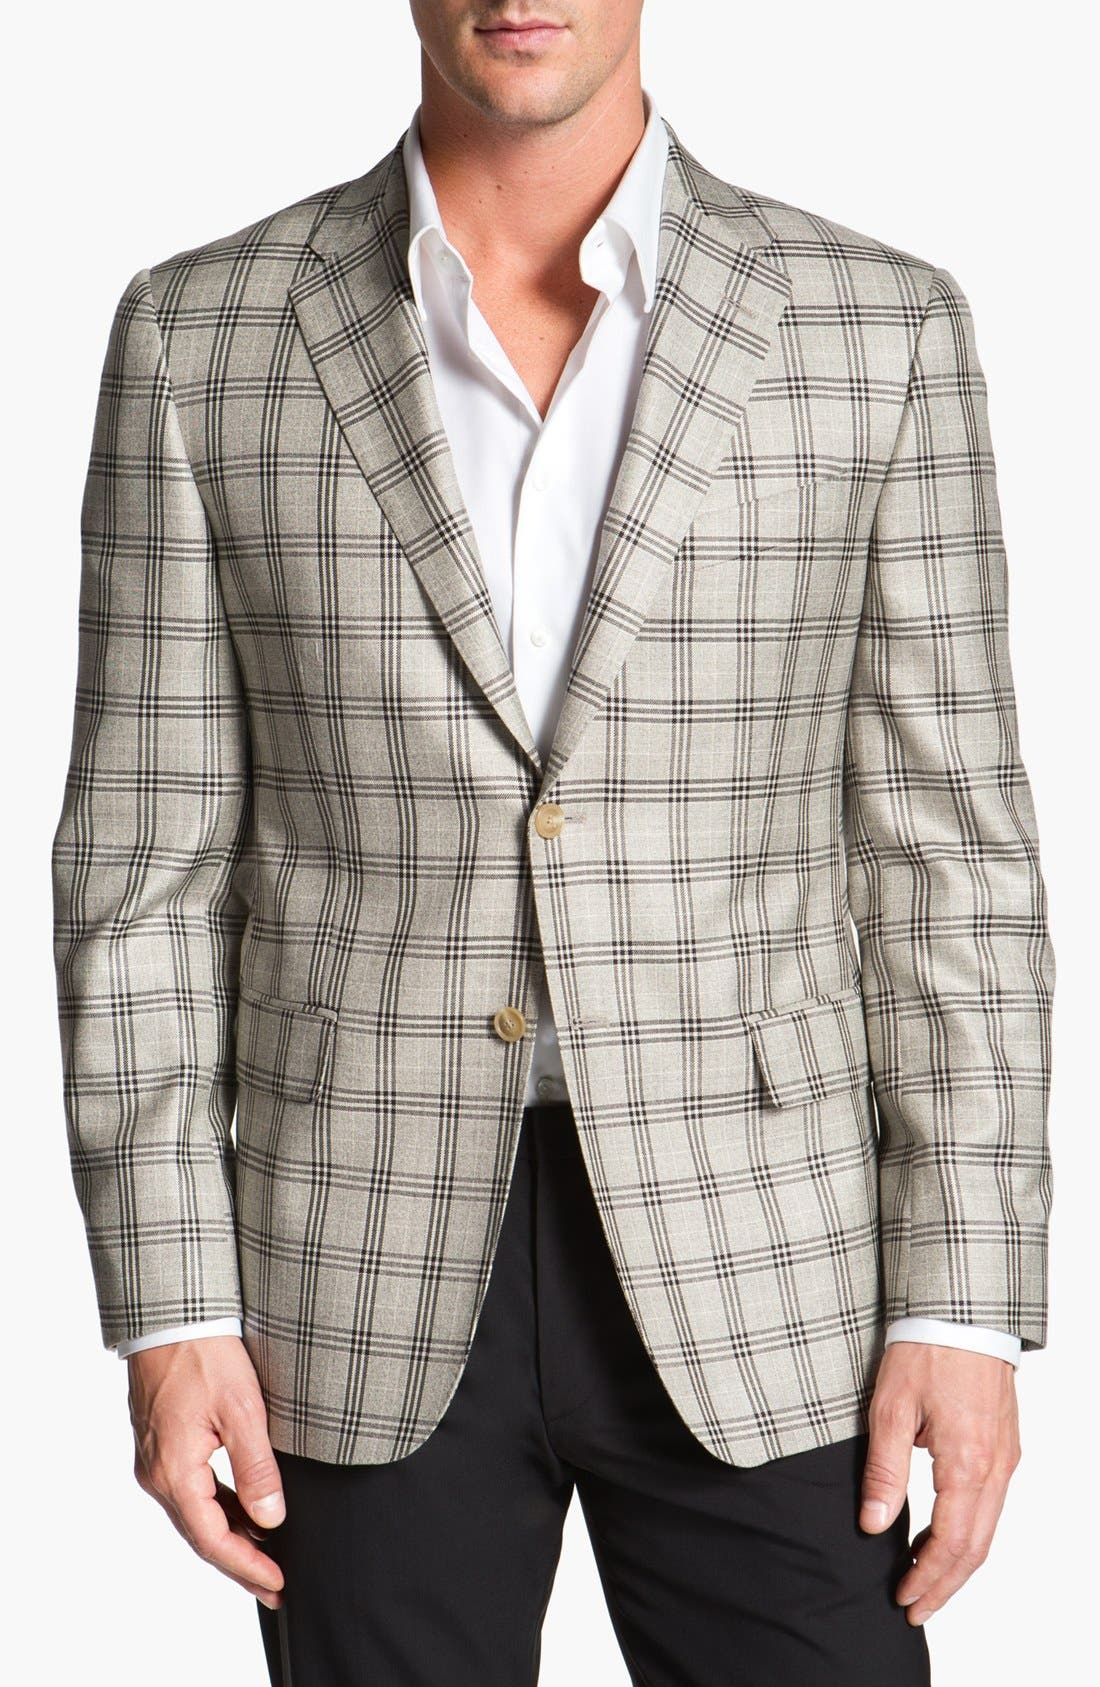 Alternate Image 1 Selected - Joseph Abboud 'Platinum' Plaid Wool Sportcoat